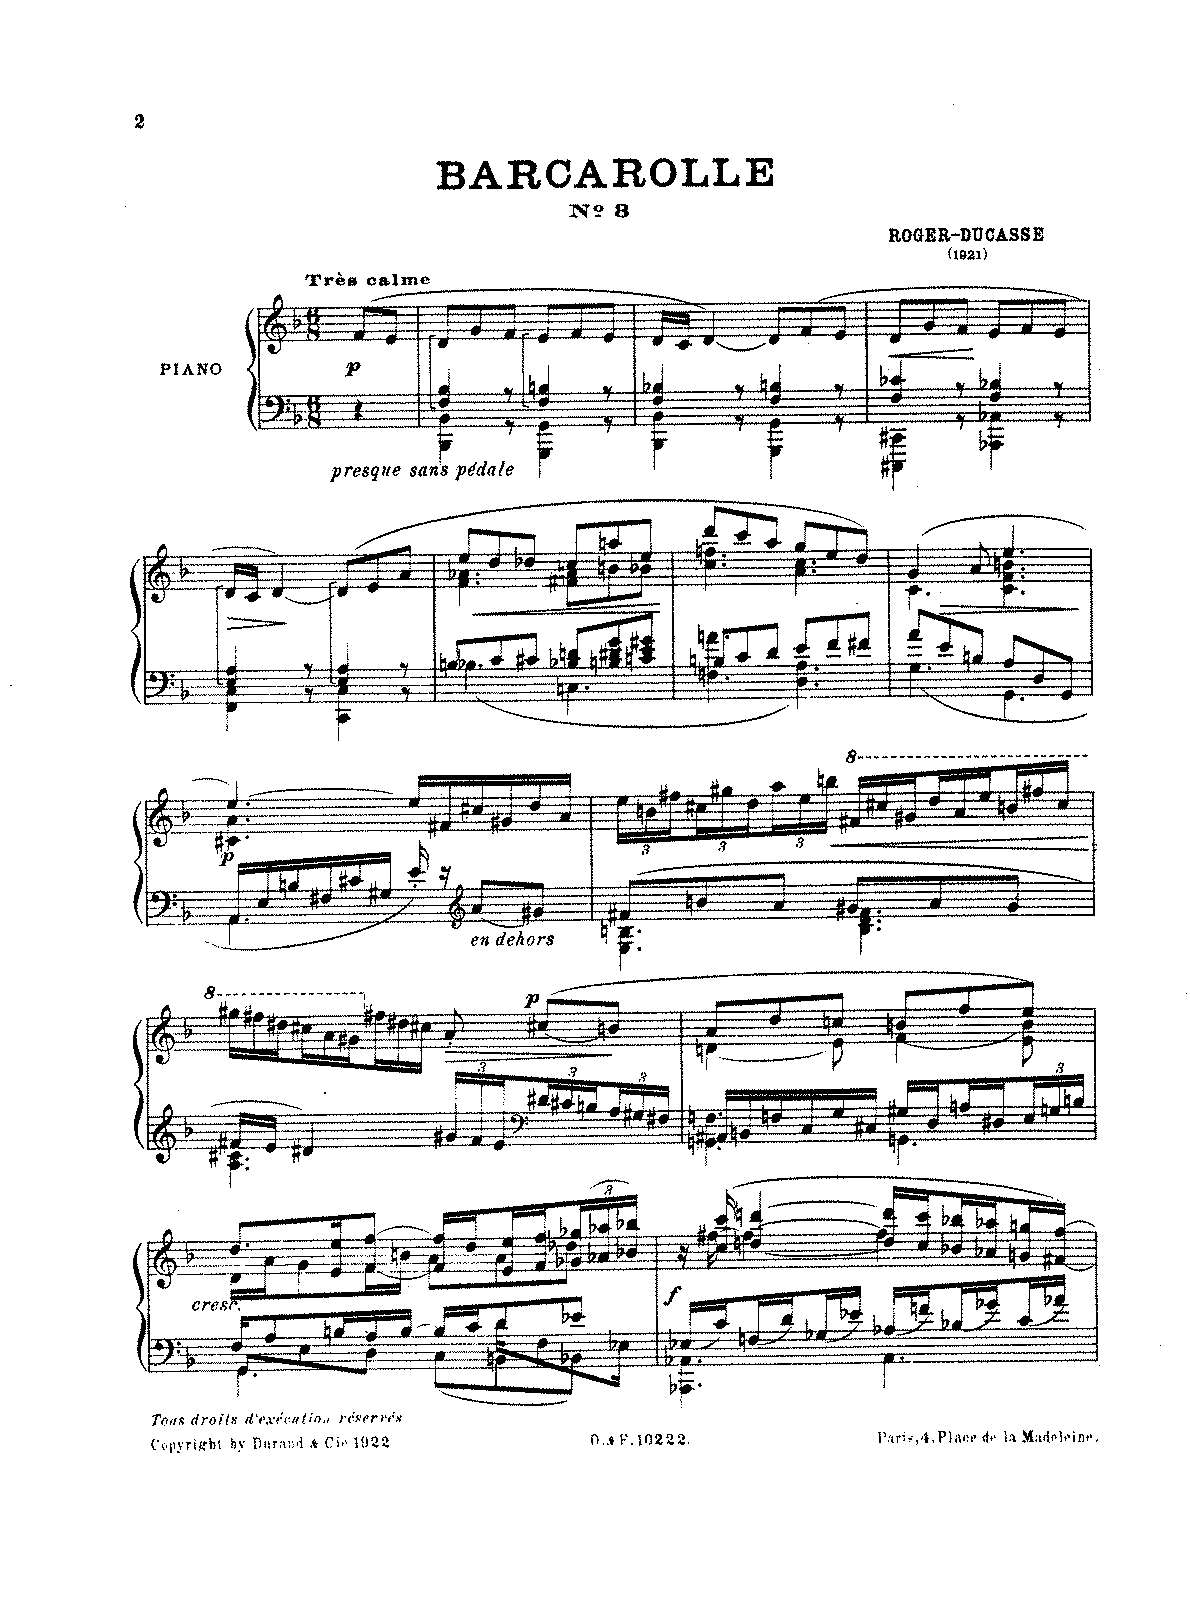 Roger-Ducasse - Barcarolle No. 3 (piano).pdf